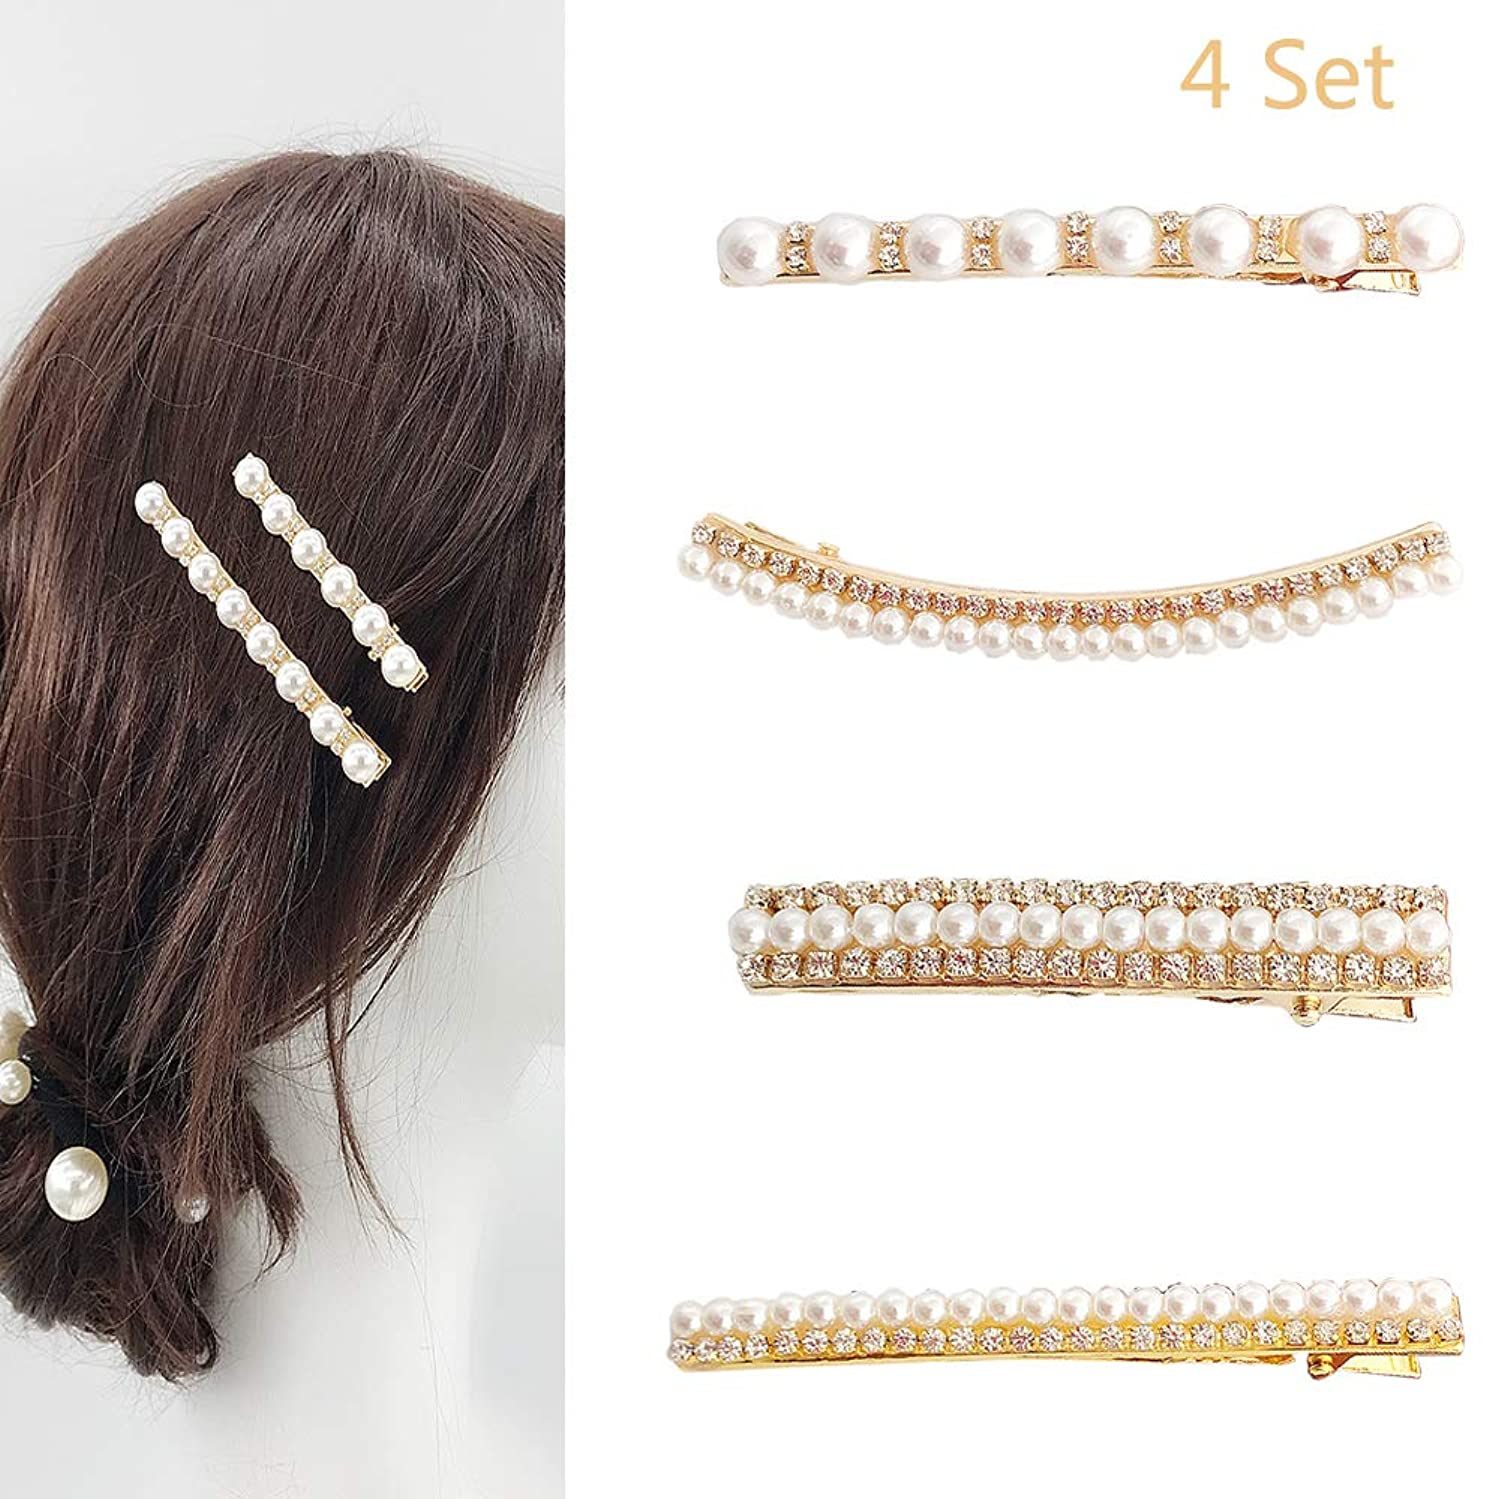 Jurxy Vintage Faux Pearl Hair Clip Metal Alloy Straight Side Hair Barrettes Club Party Hairpins for Bridal Wedding Decoration – 4PCS